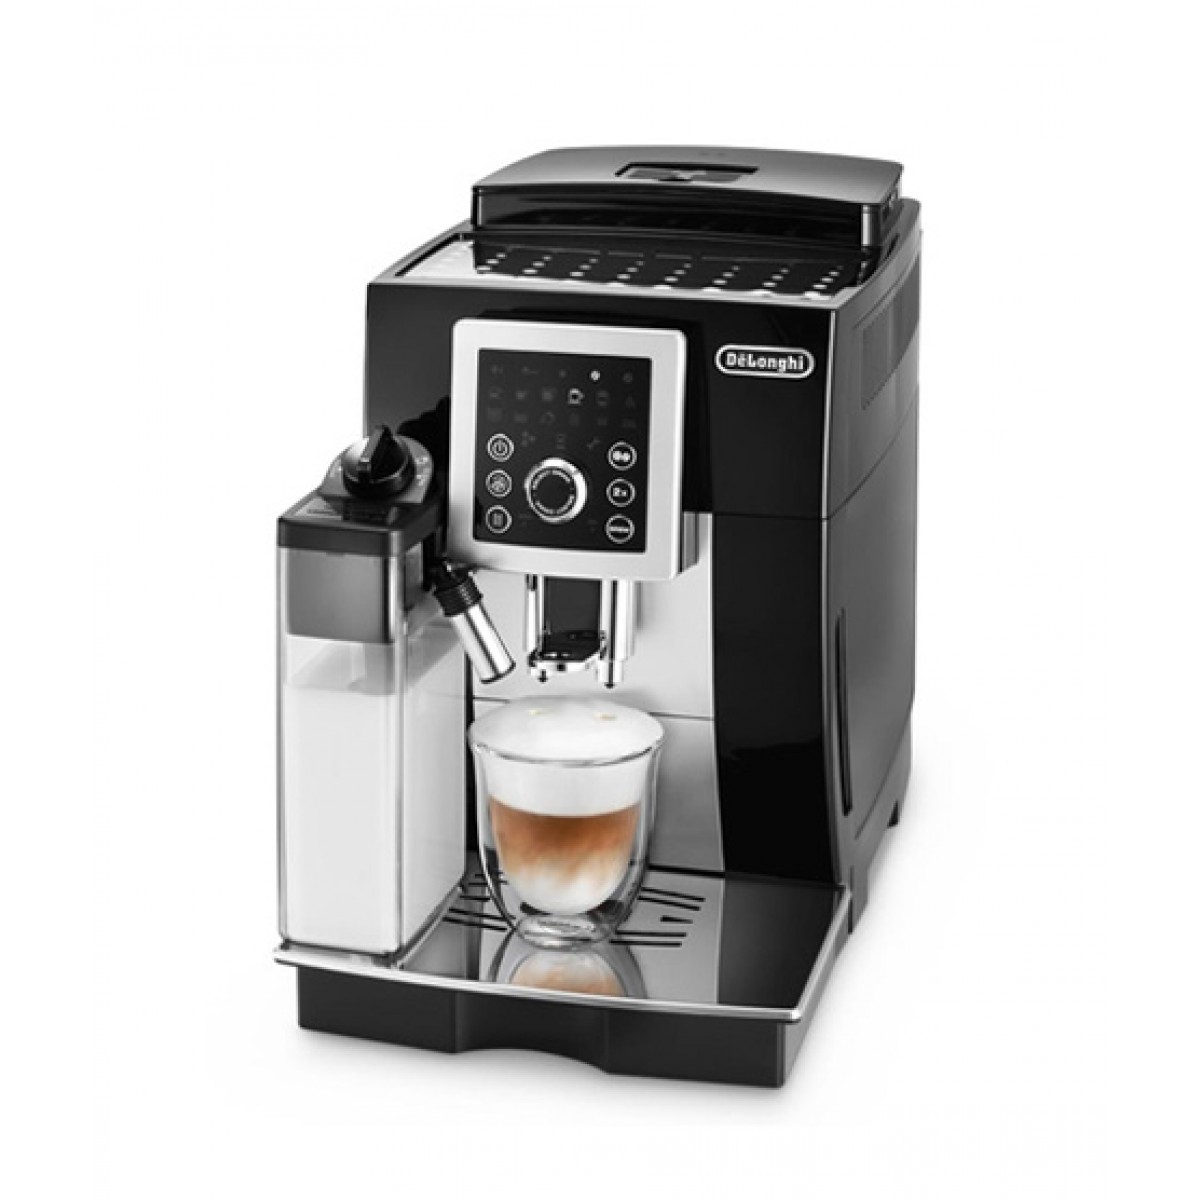 Where To Buy Delonghi Coffee Machines